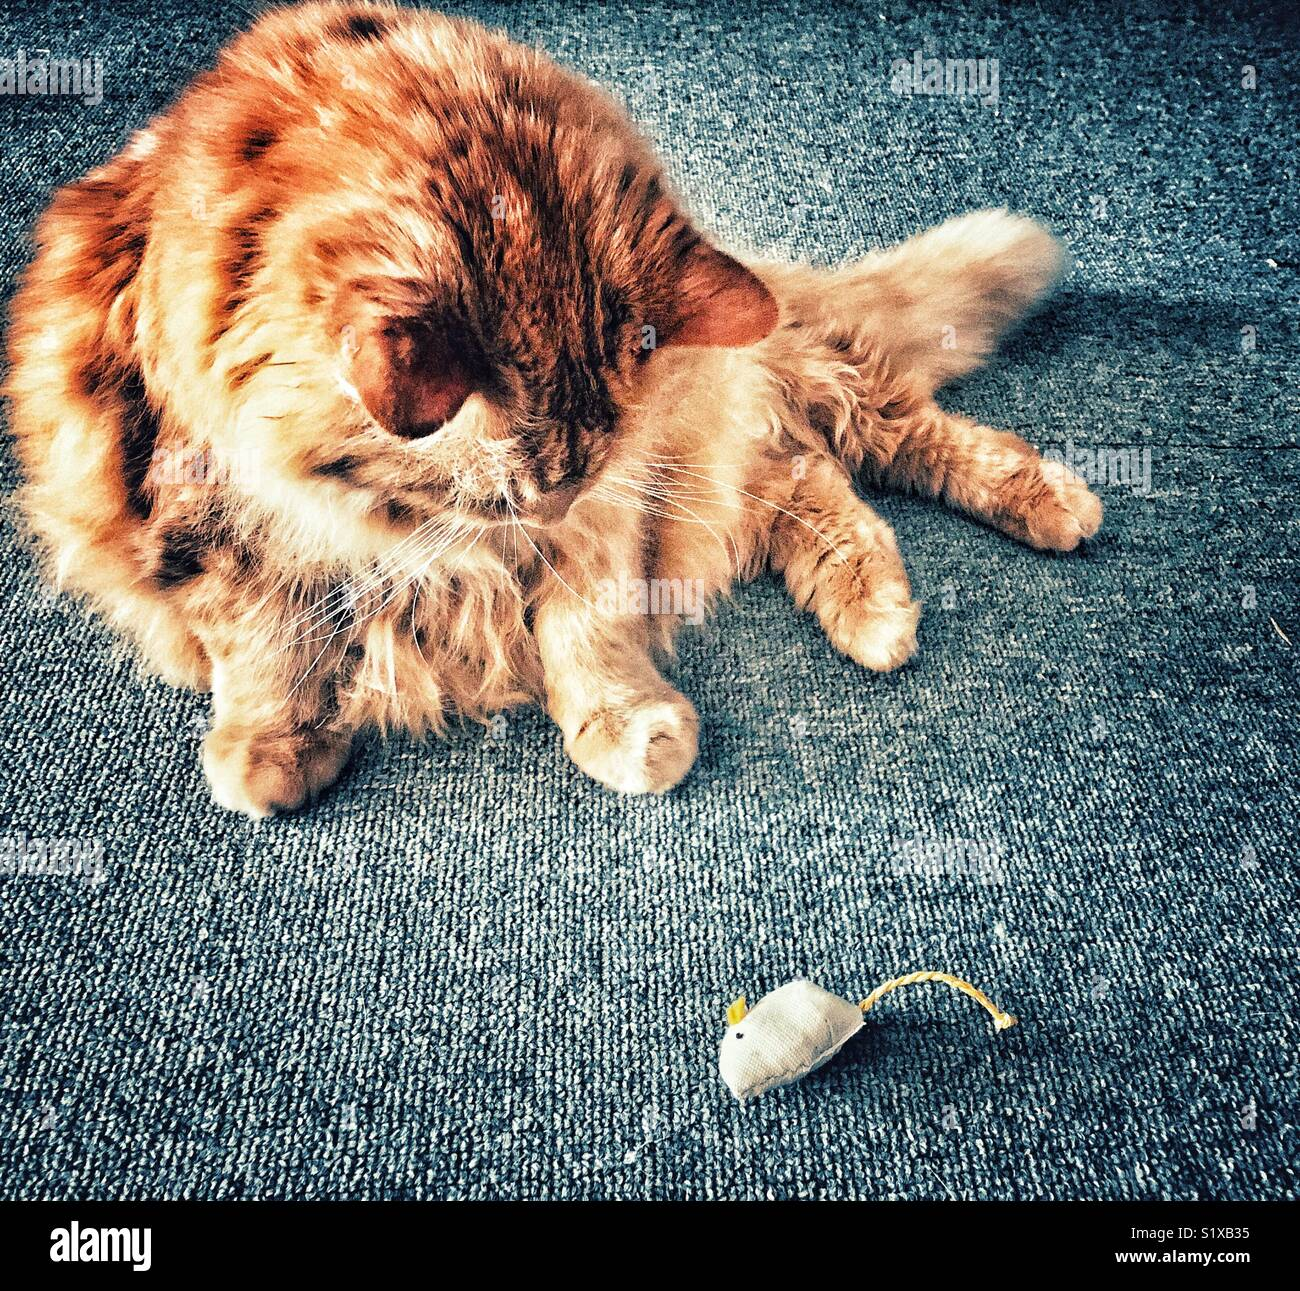 Large fluffy long haired orange cat looking at toy mouse Stock Photo